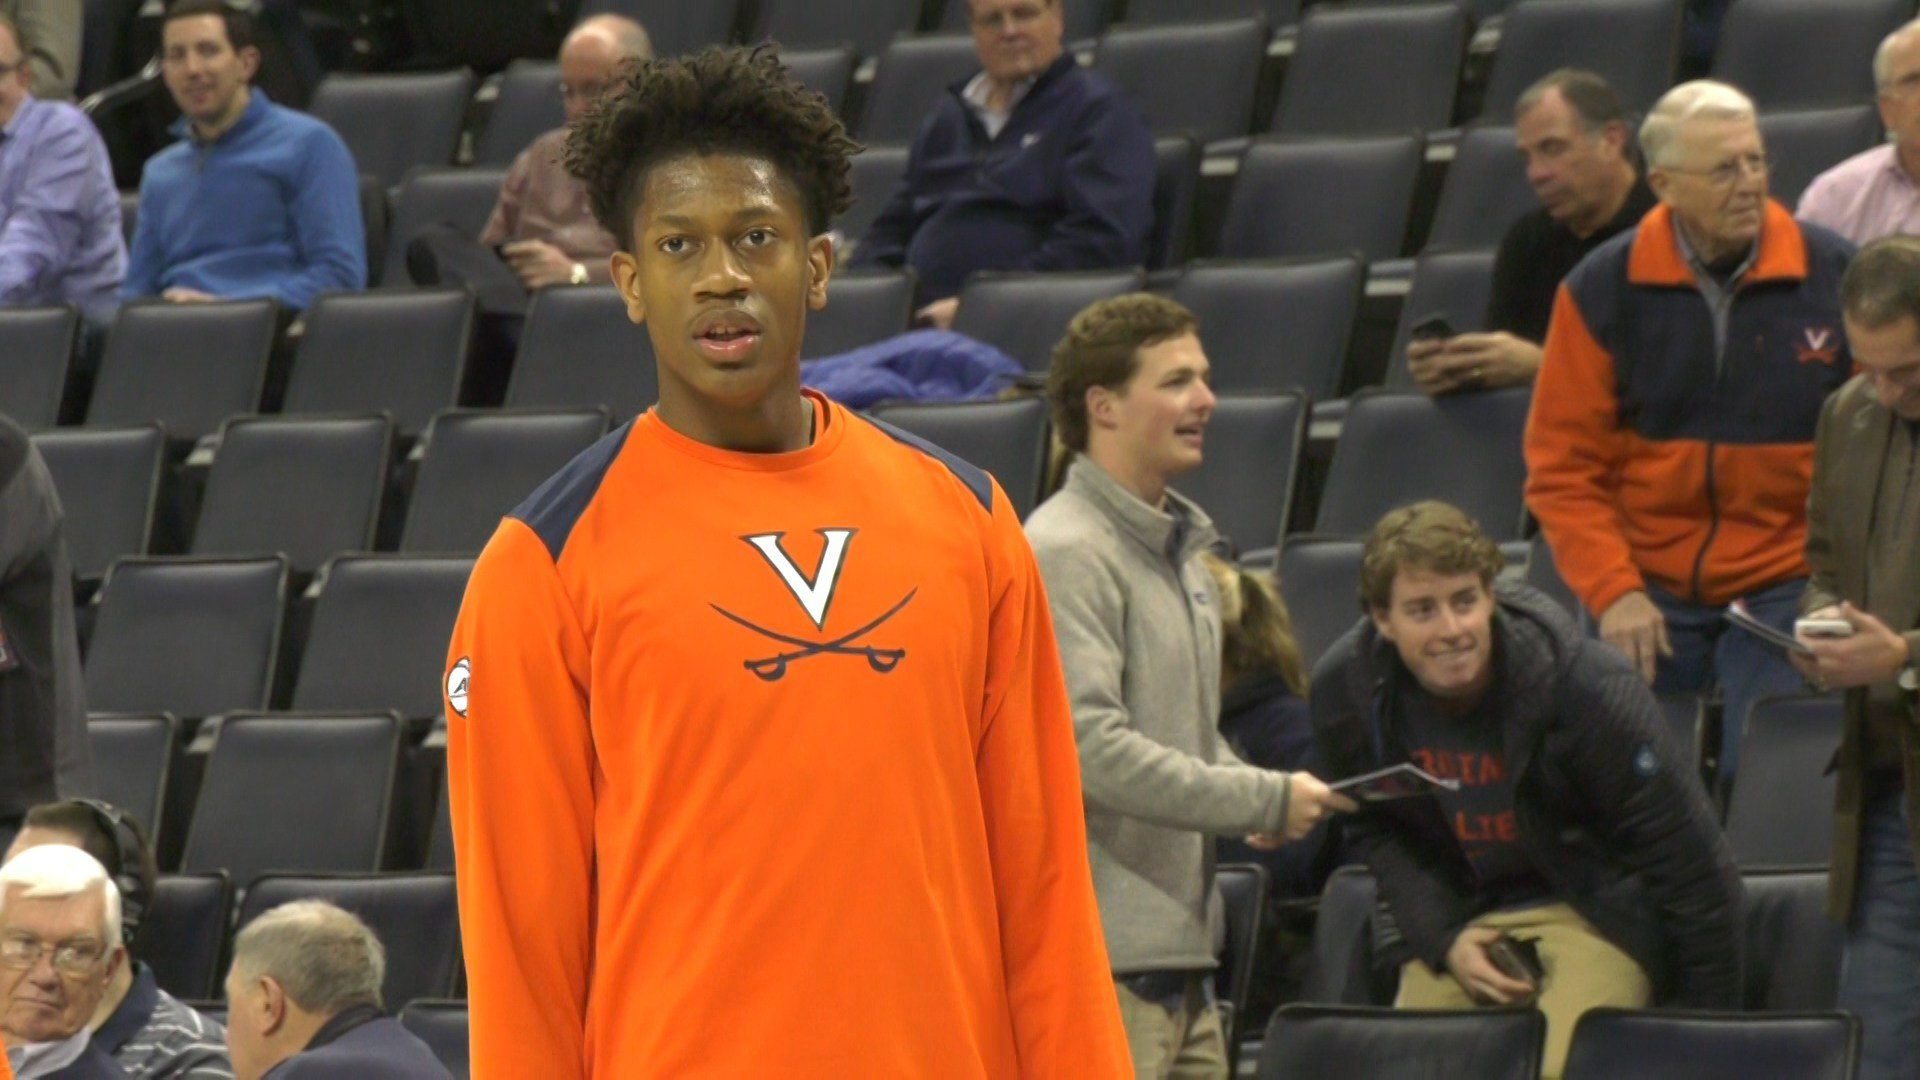 Virginia opens up tournament plat against UMBC — March Madness